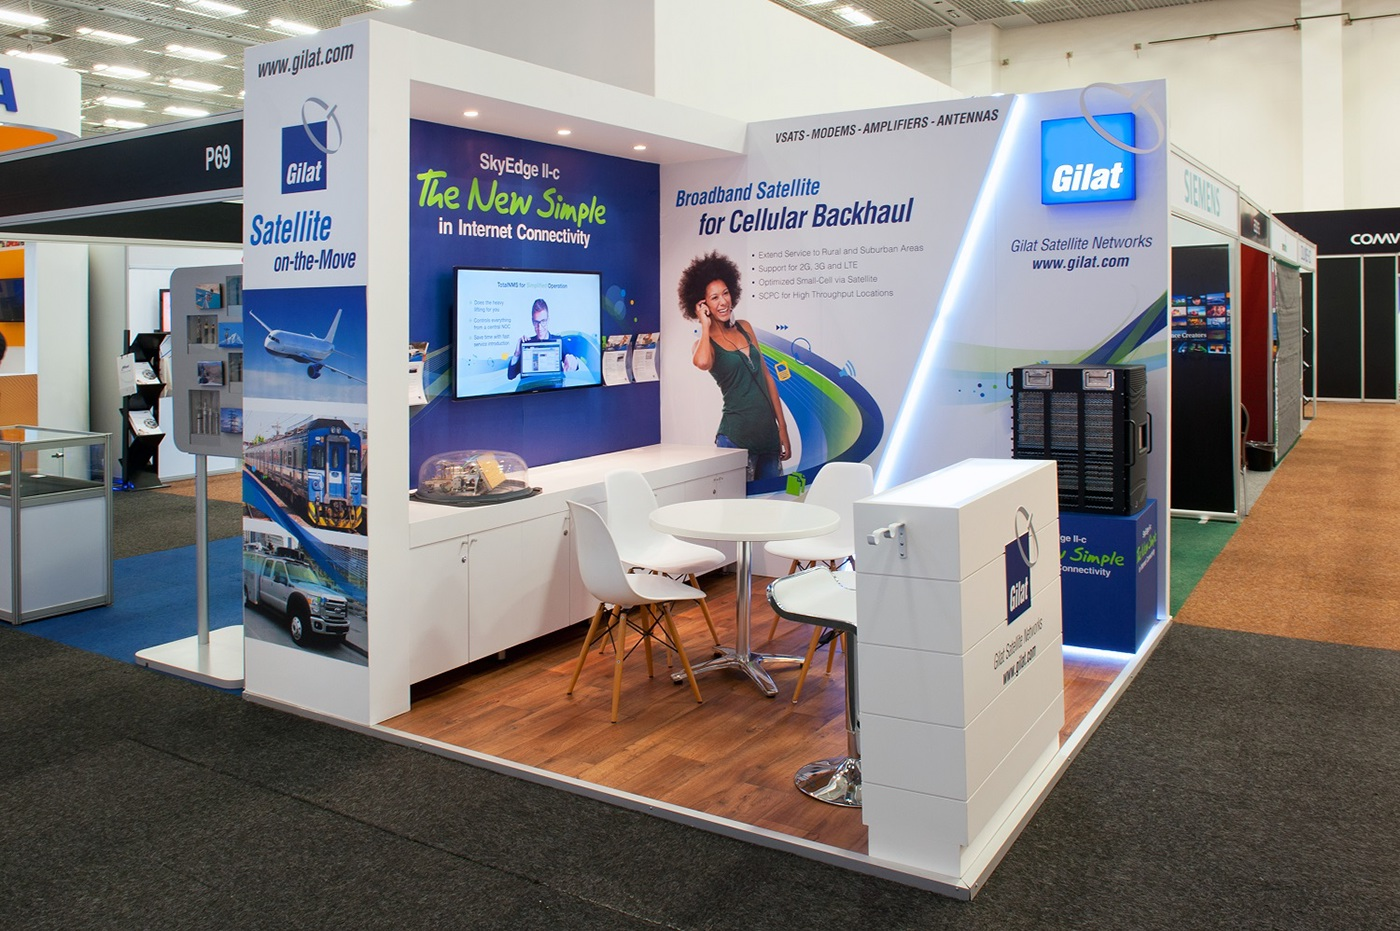 Small Exhibition Stand Quotes : Gilat africacom on behance